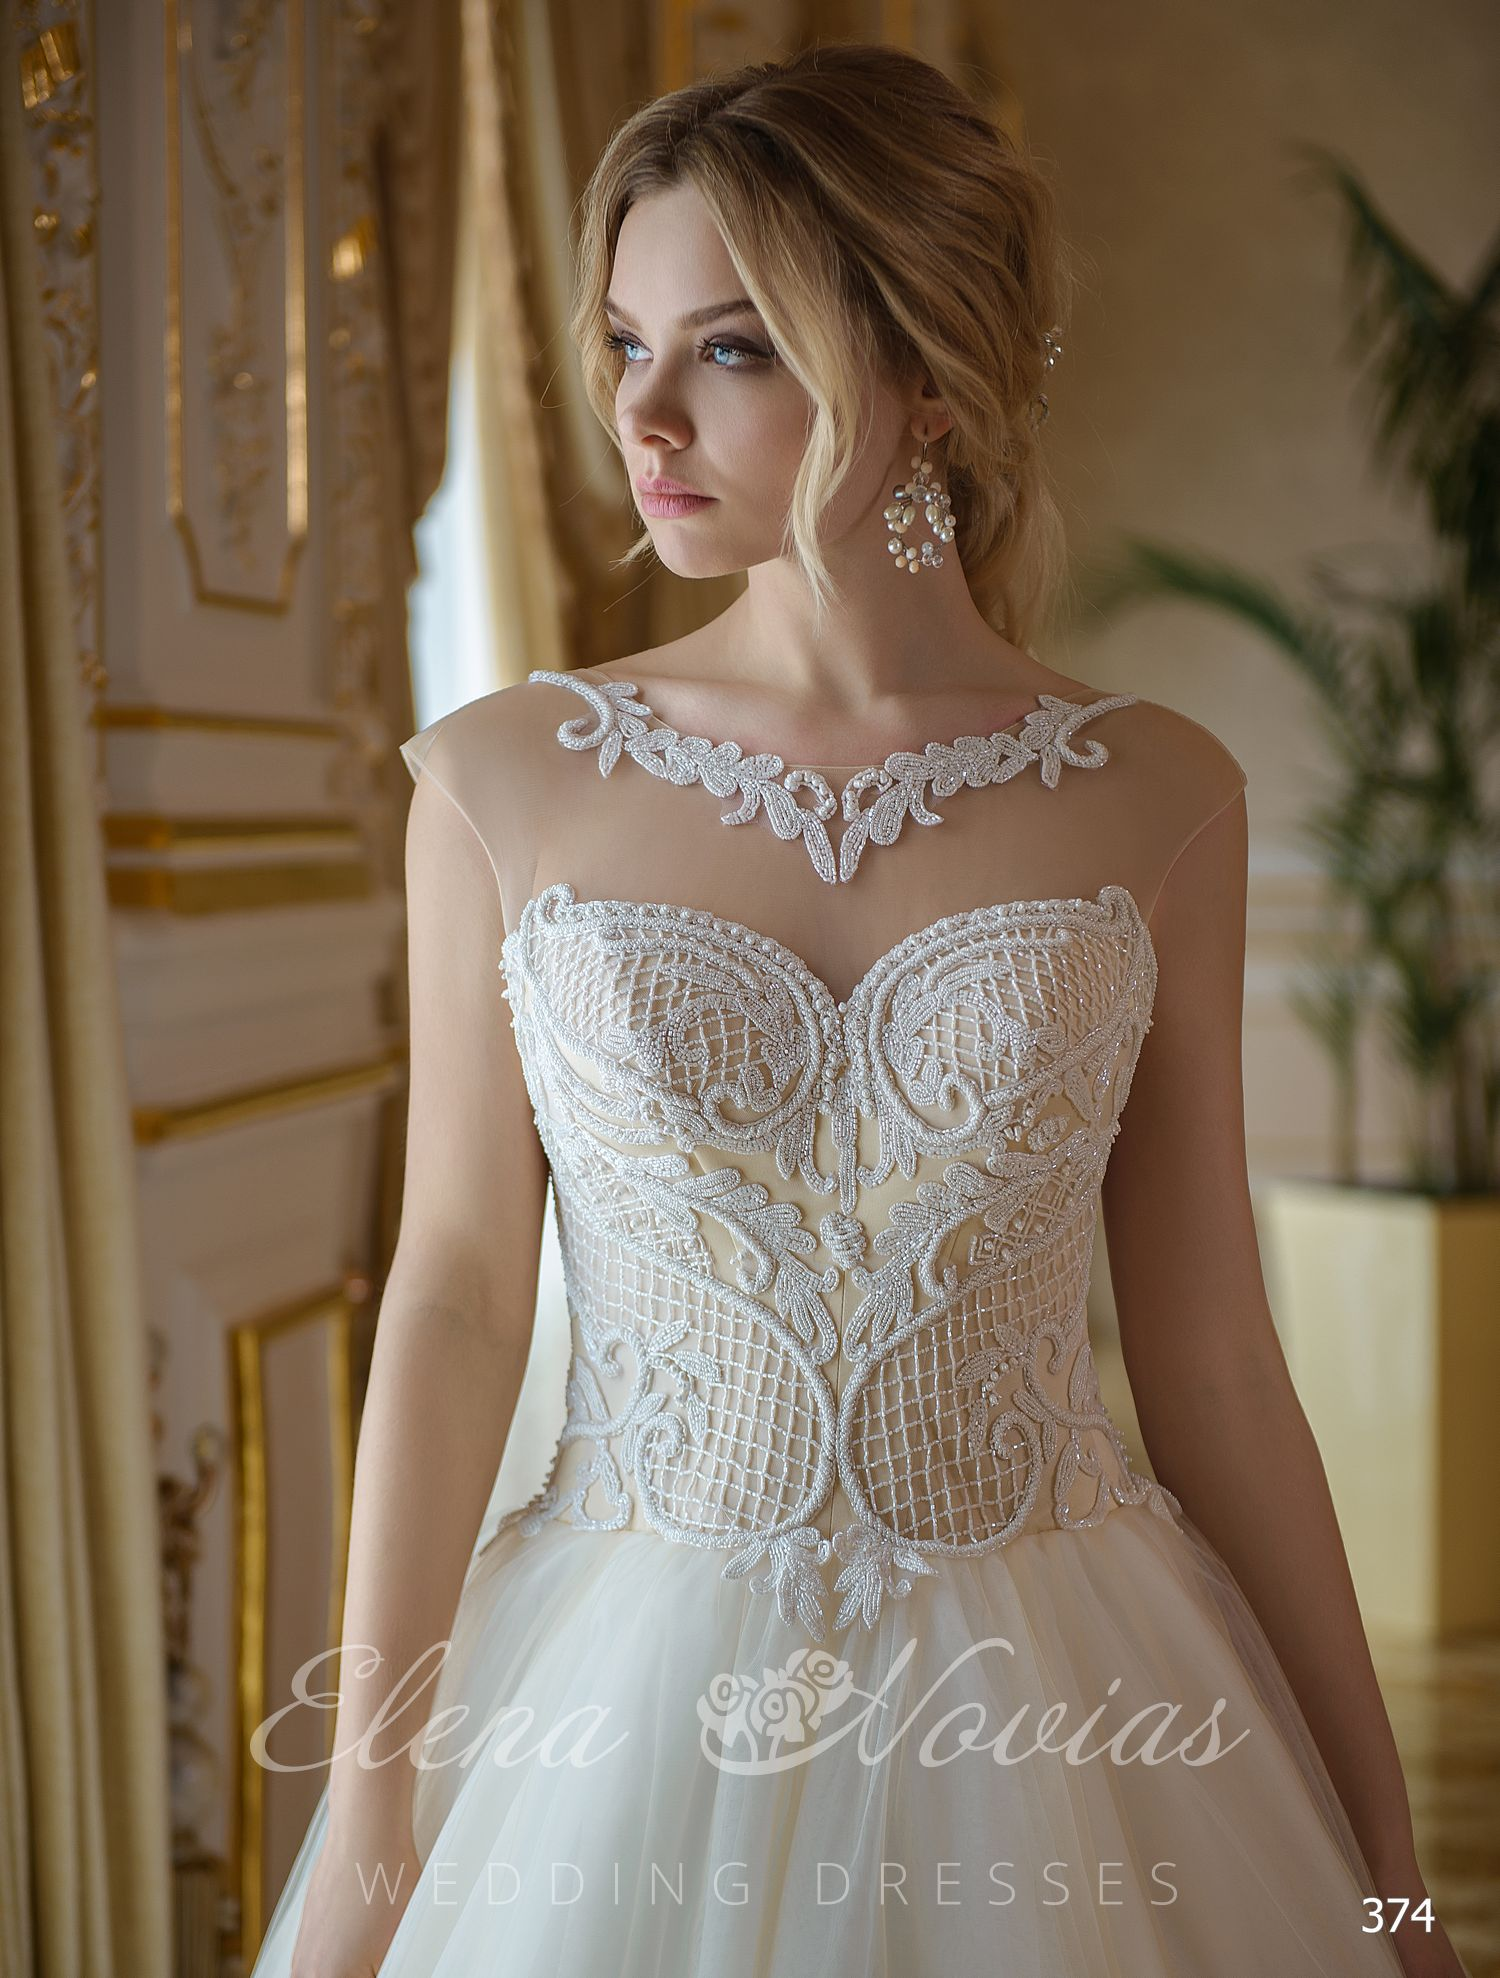 Wedding dress wholesale 374